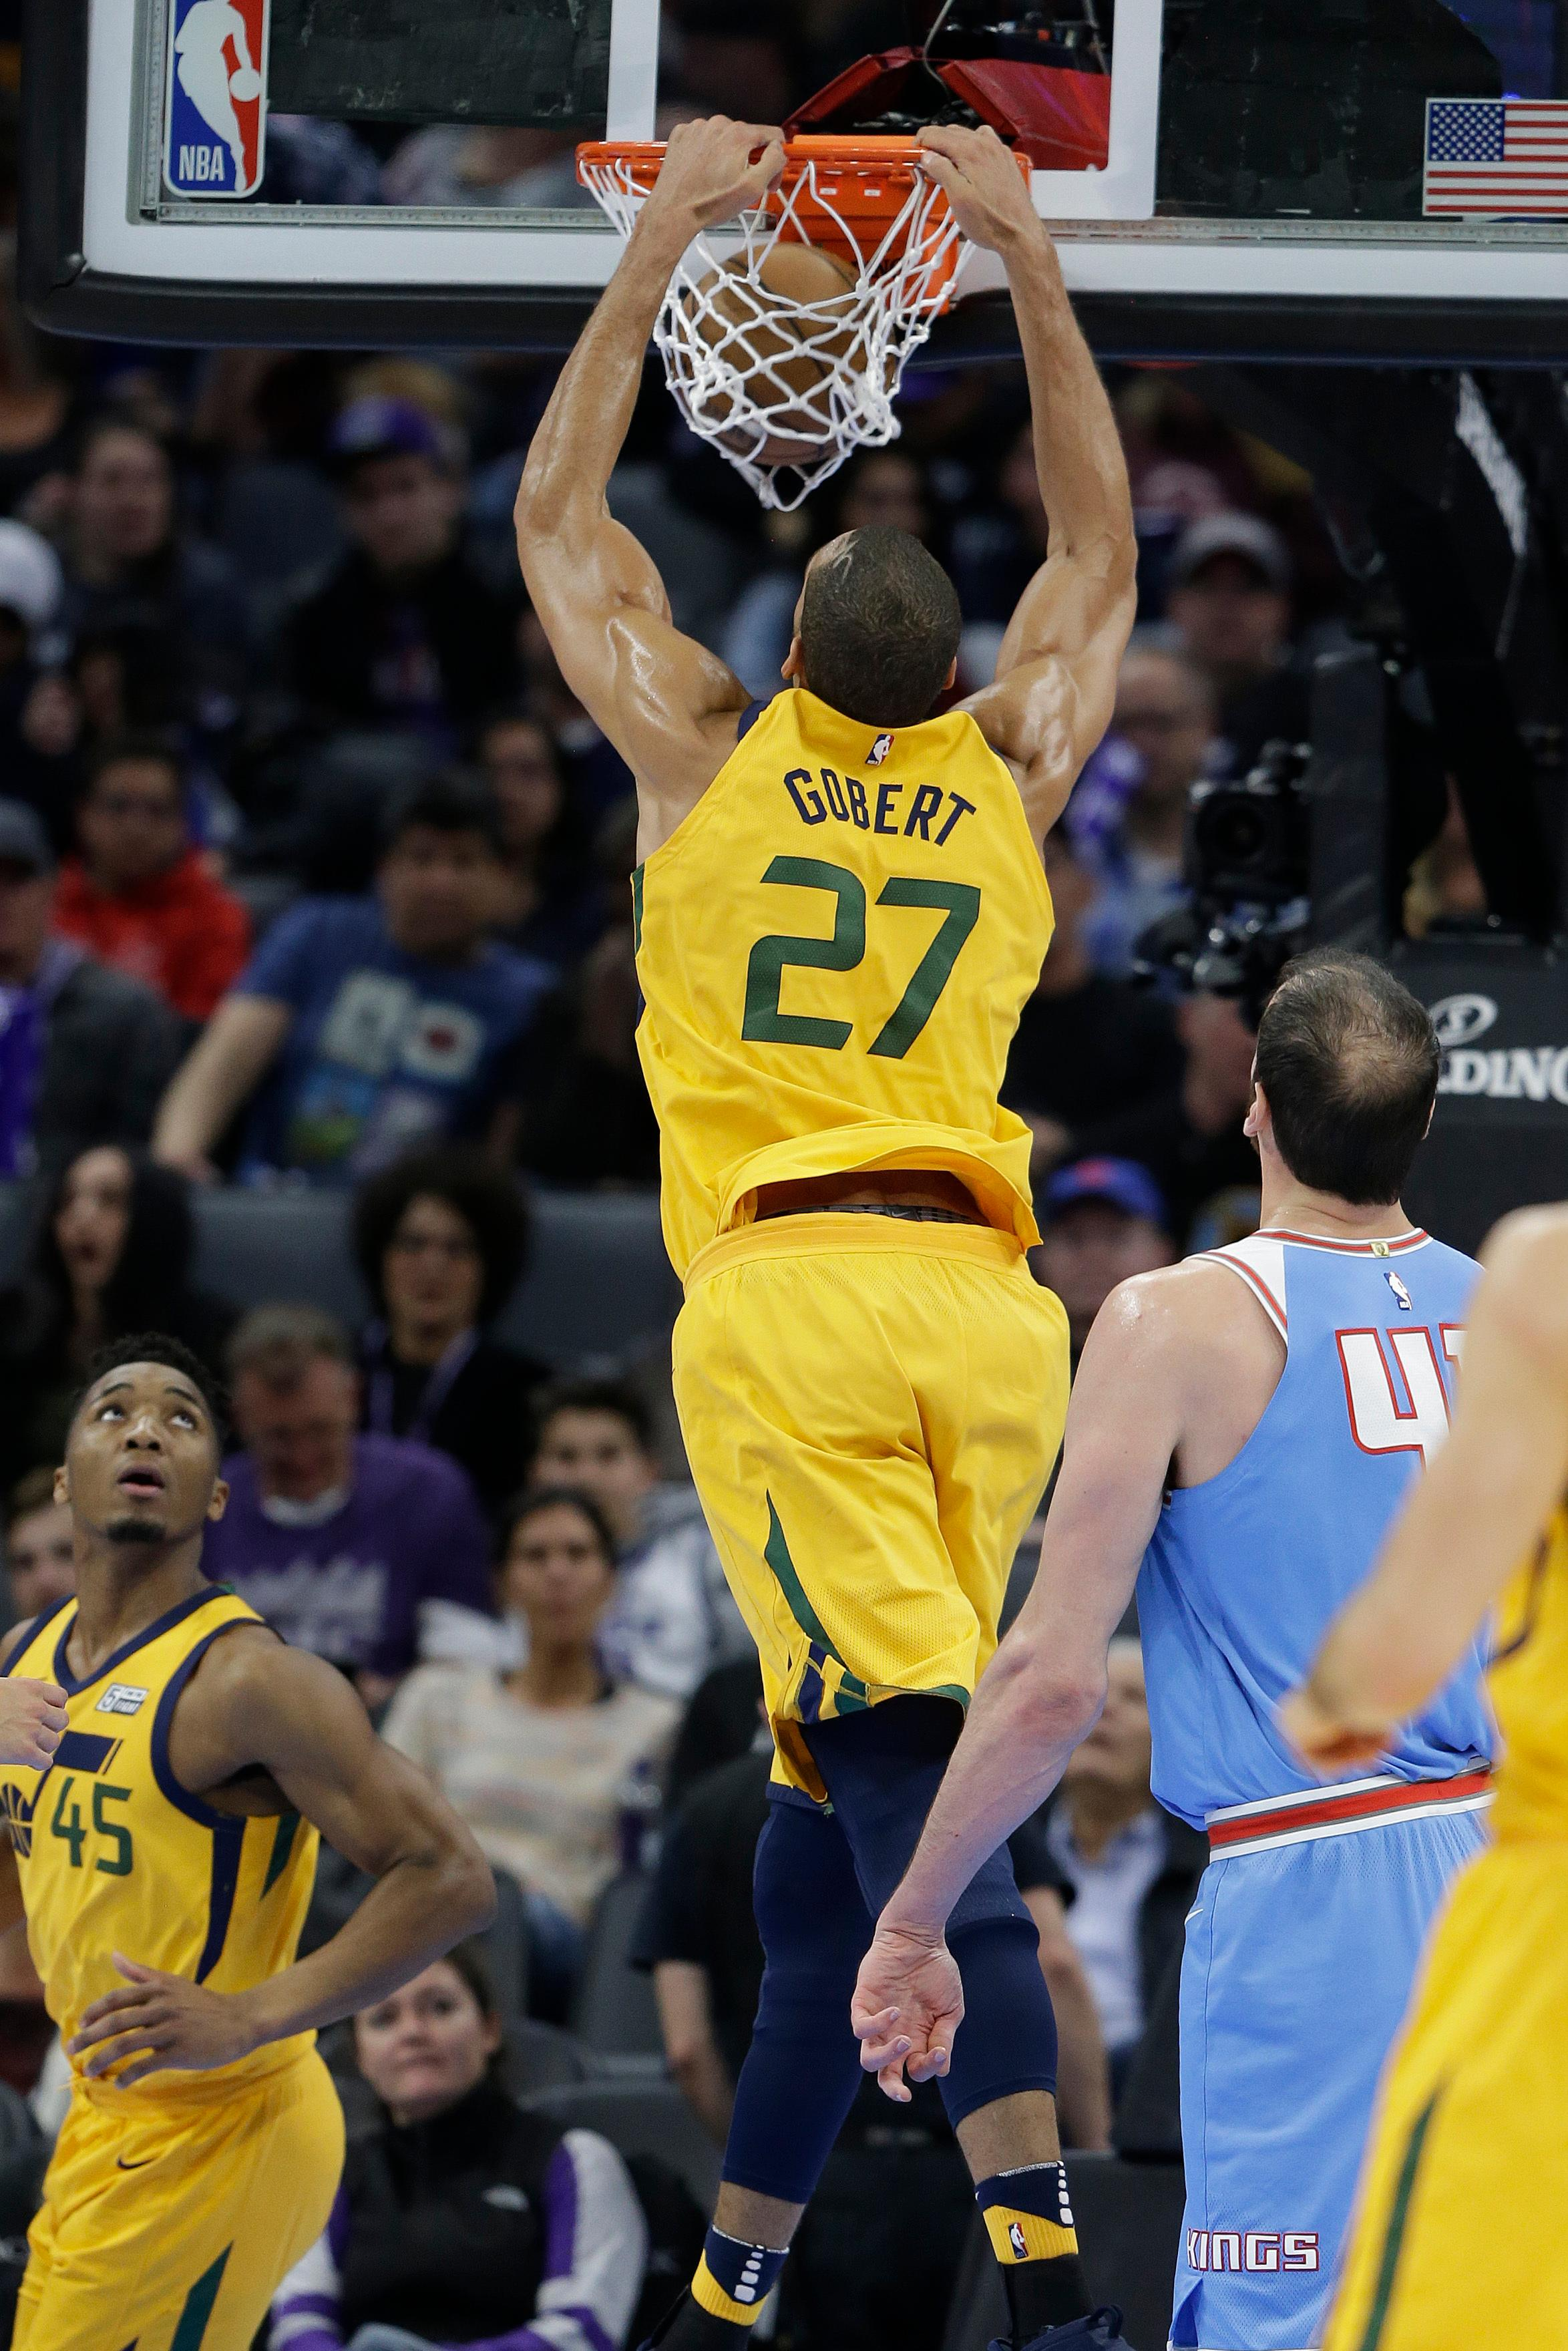 Utah Jazz center Rudy Gobert goes up for the dunk as Sacramento Kings center Kosta Koufos, right, watches during the first quarter of an NBA basketball game Saturday, March 3, 2018, in Sacramento, Calif. (AP Photo/Rich Pedroncelli)